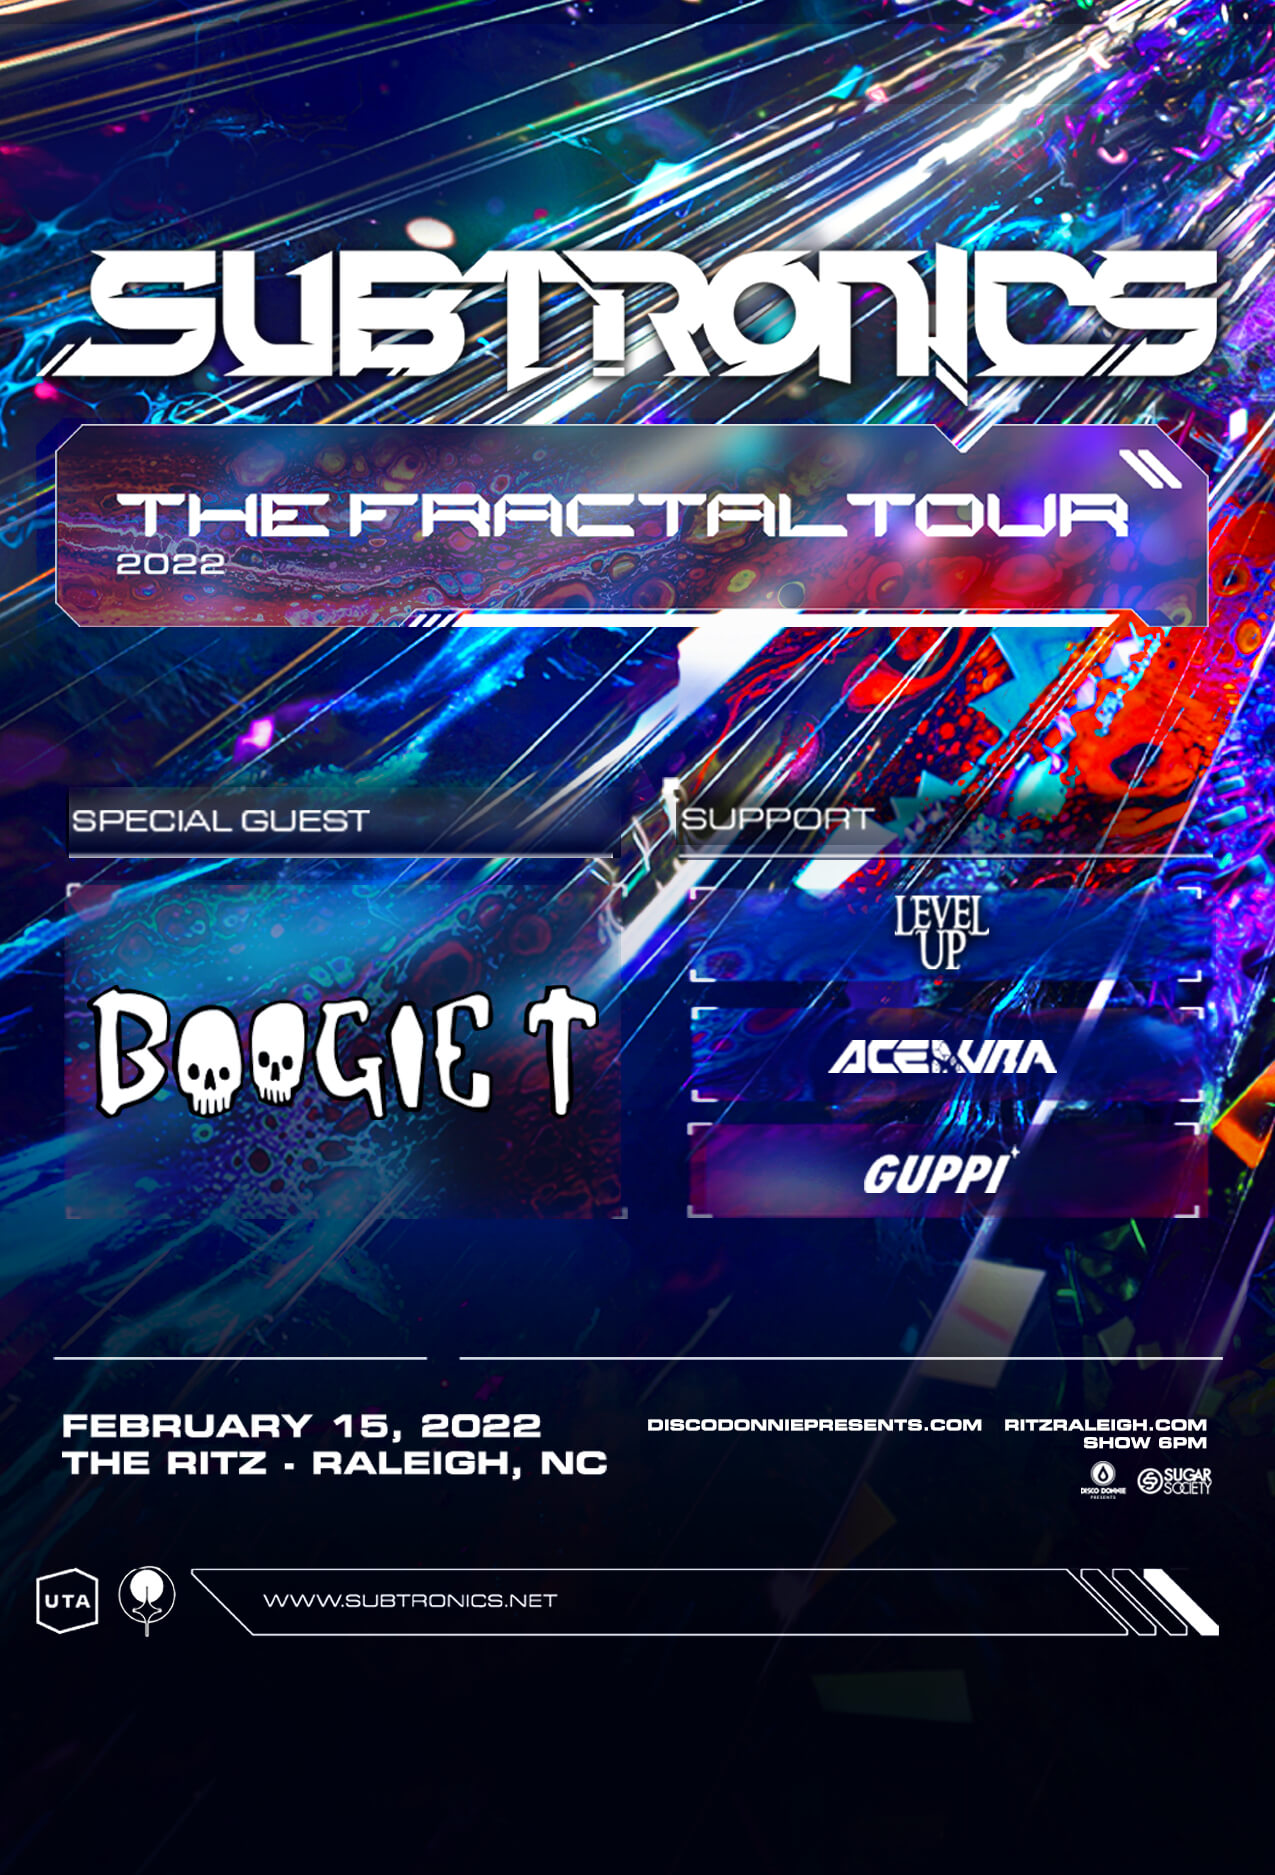 Subtronics, Boogie T, Level Up, Ace Aura, Guppi in Raleigh